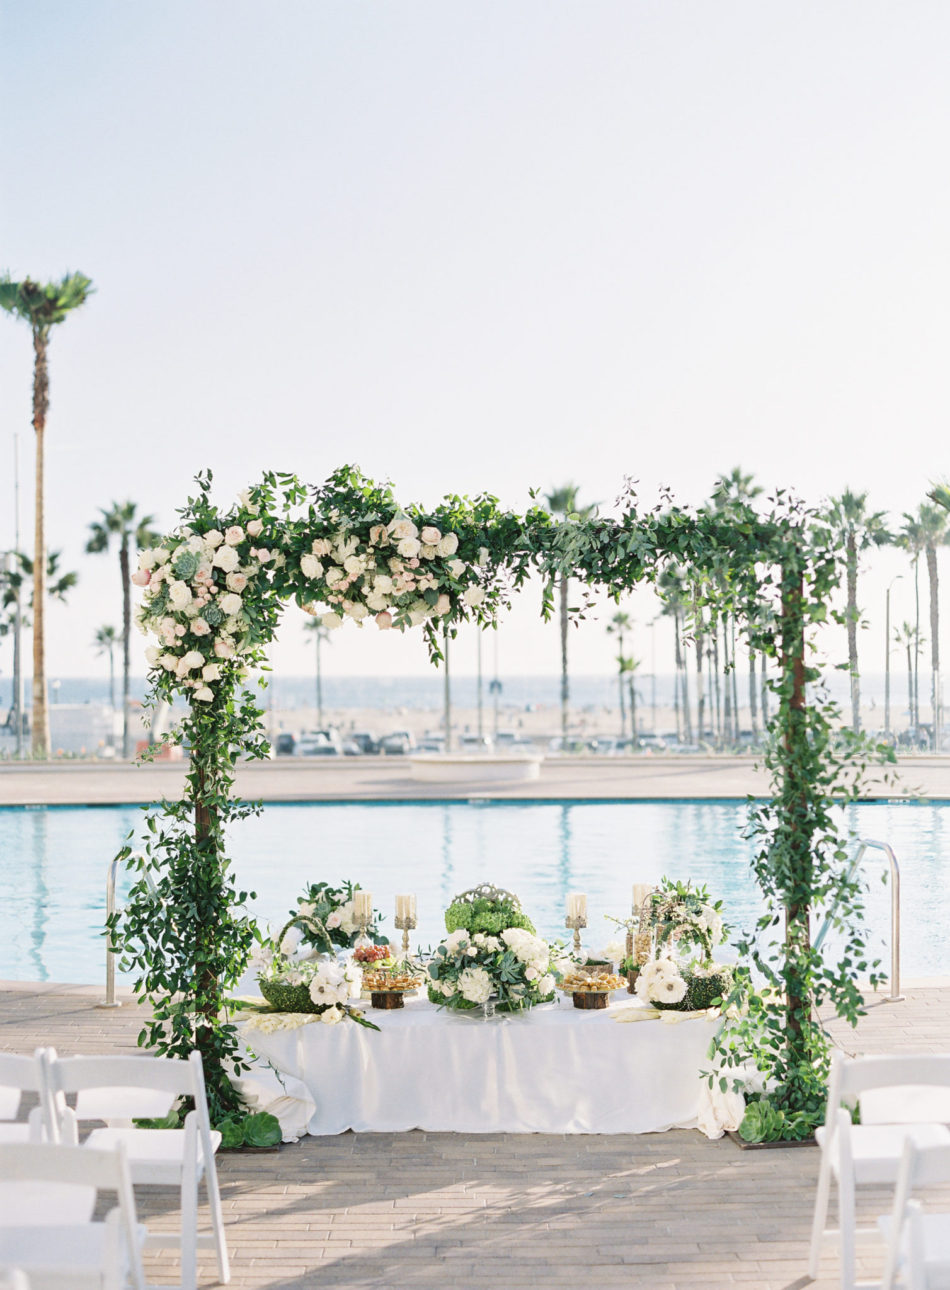 romantic waterfront wedding, floral-filled arch, blush floral arch, floral design, florist, wedding florist, wedding flowers, orange county weddings, orange county wedding florist, orange county florist, orange county floral design, flowers by cina